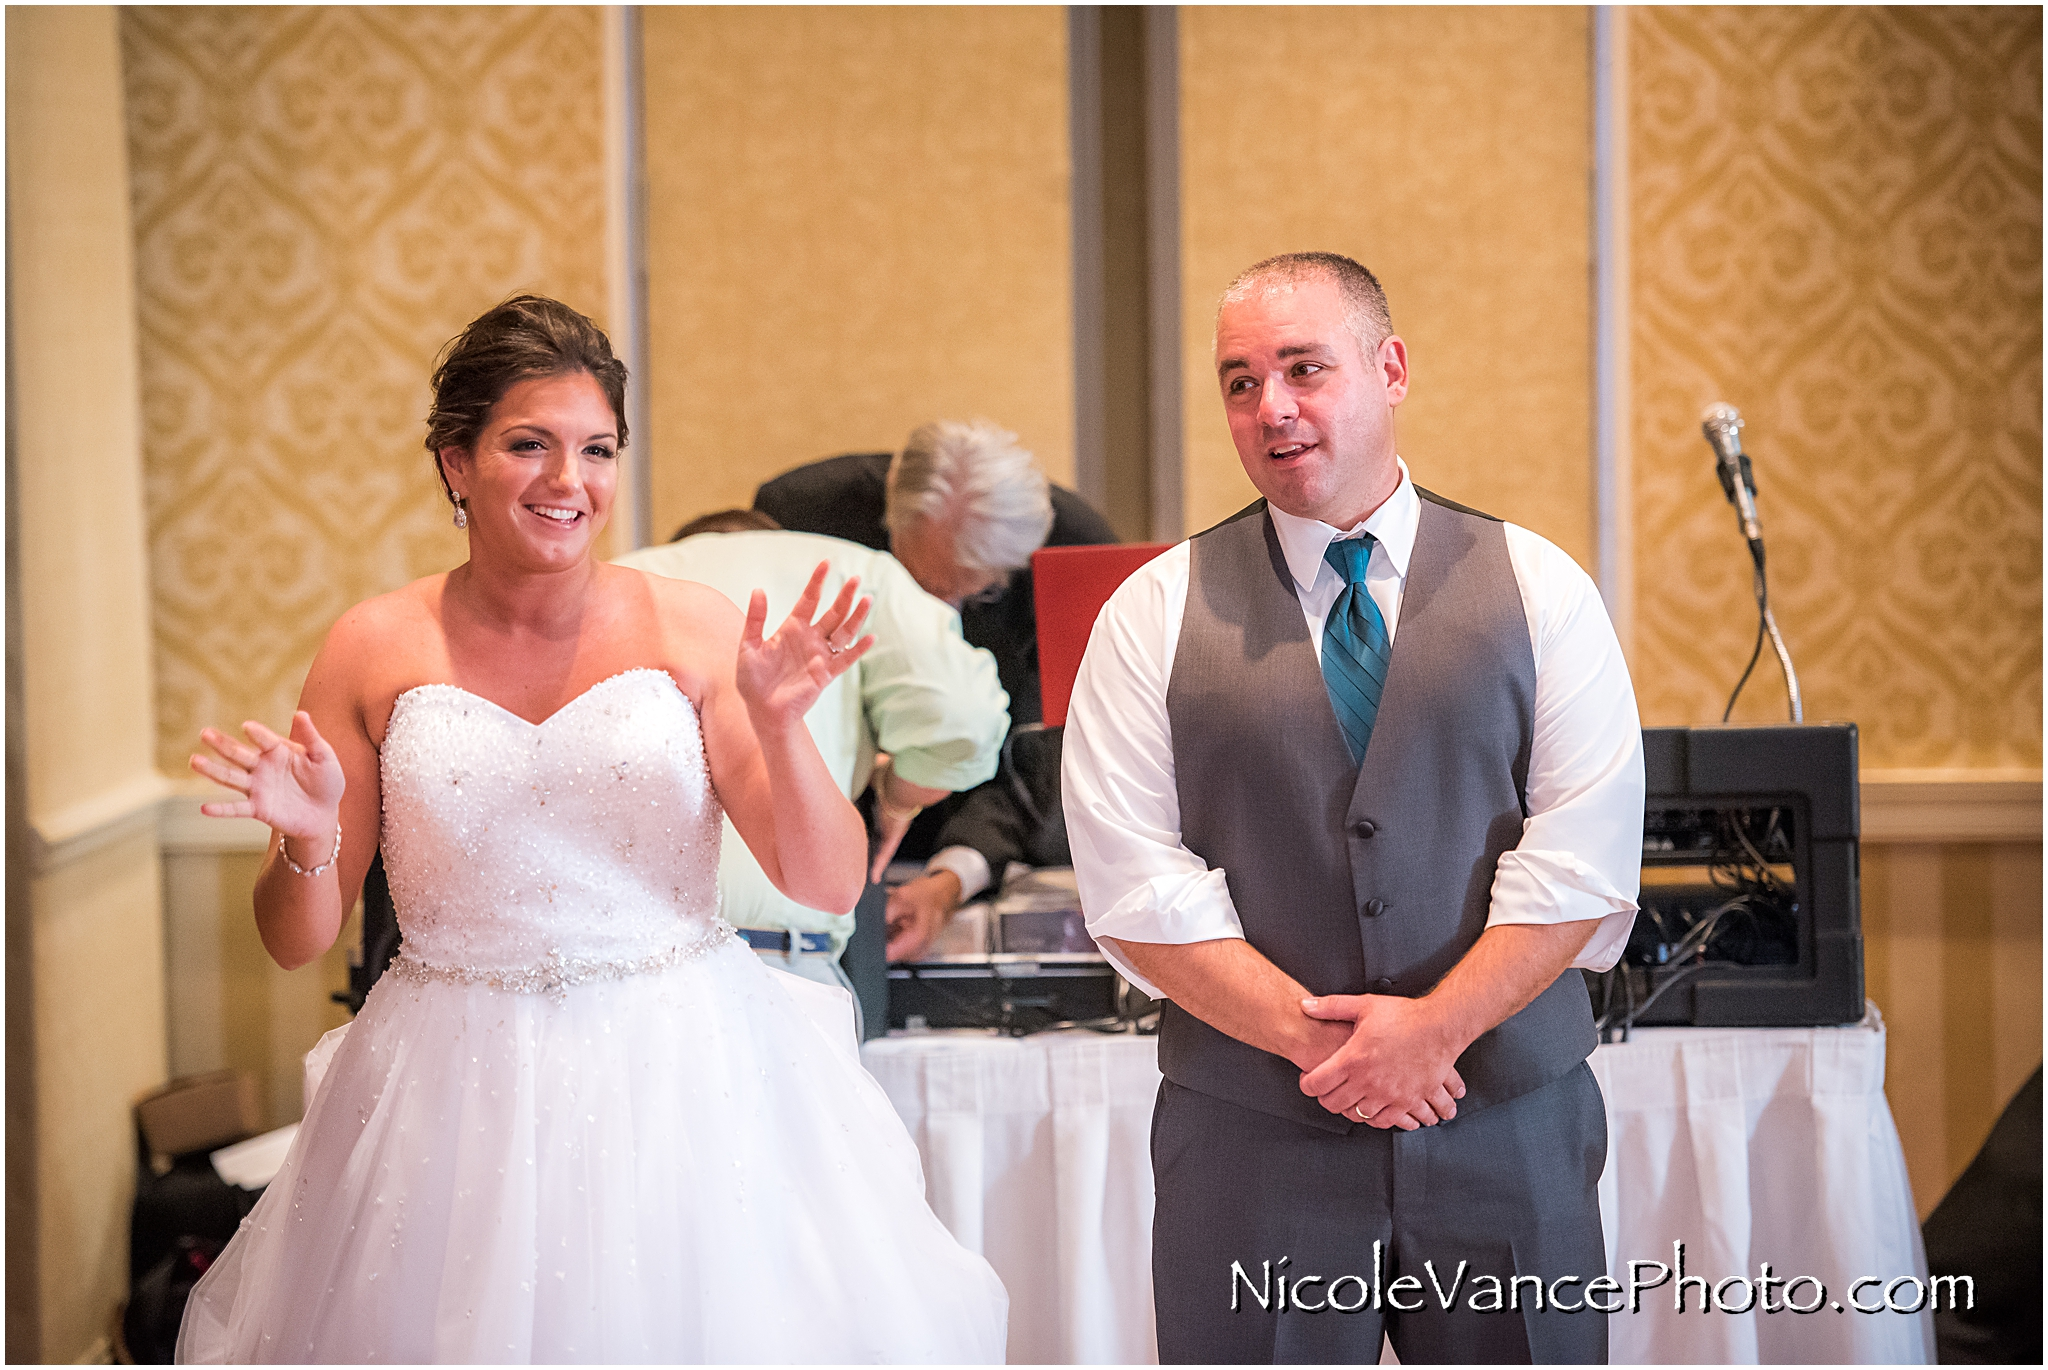 The bride and groom make a toast at the reception at the Virginia Crossings.